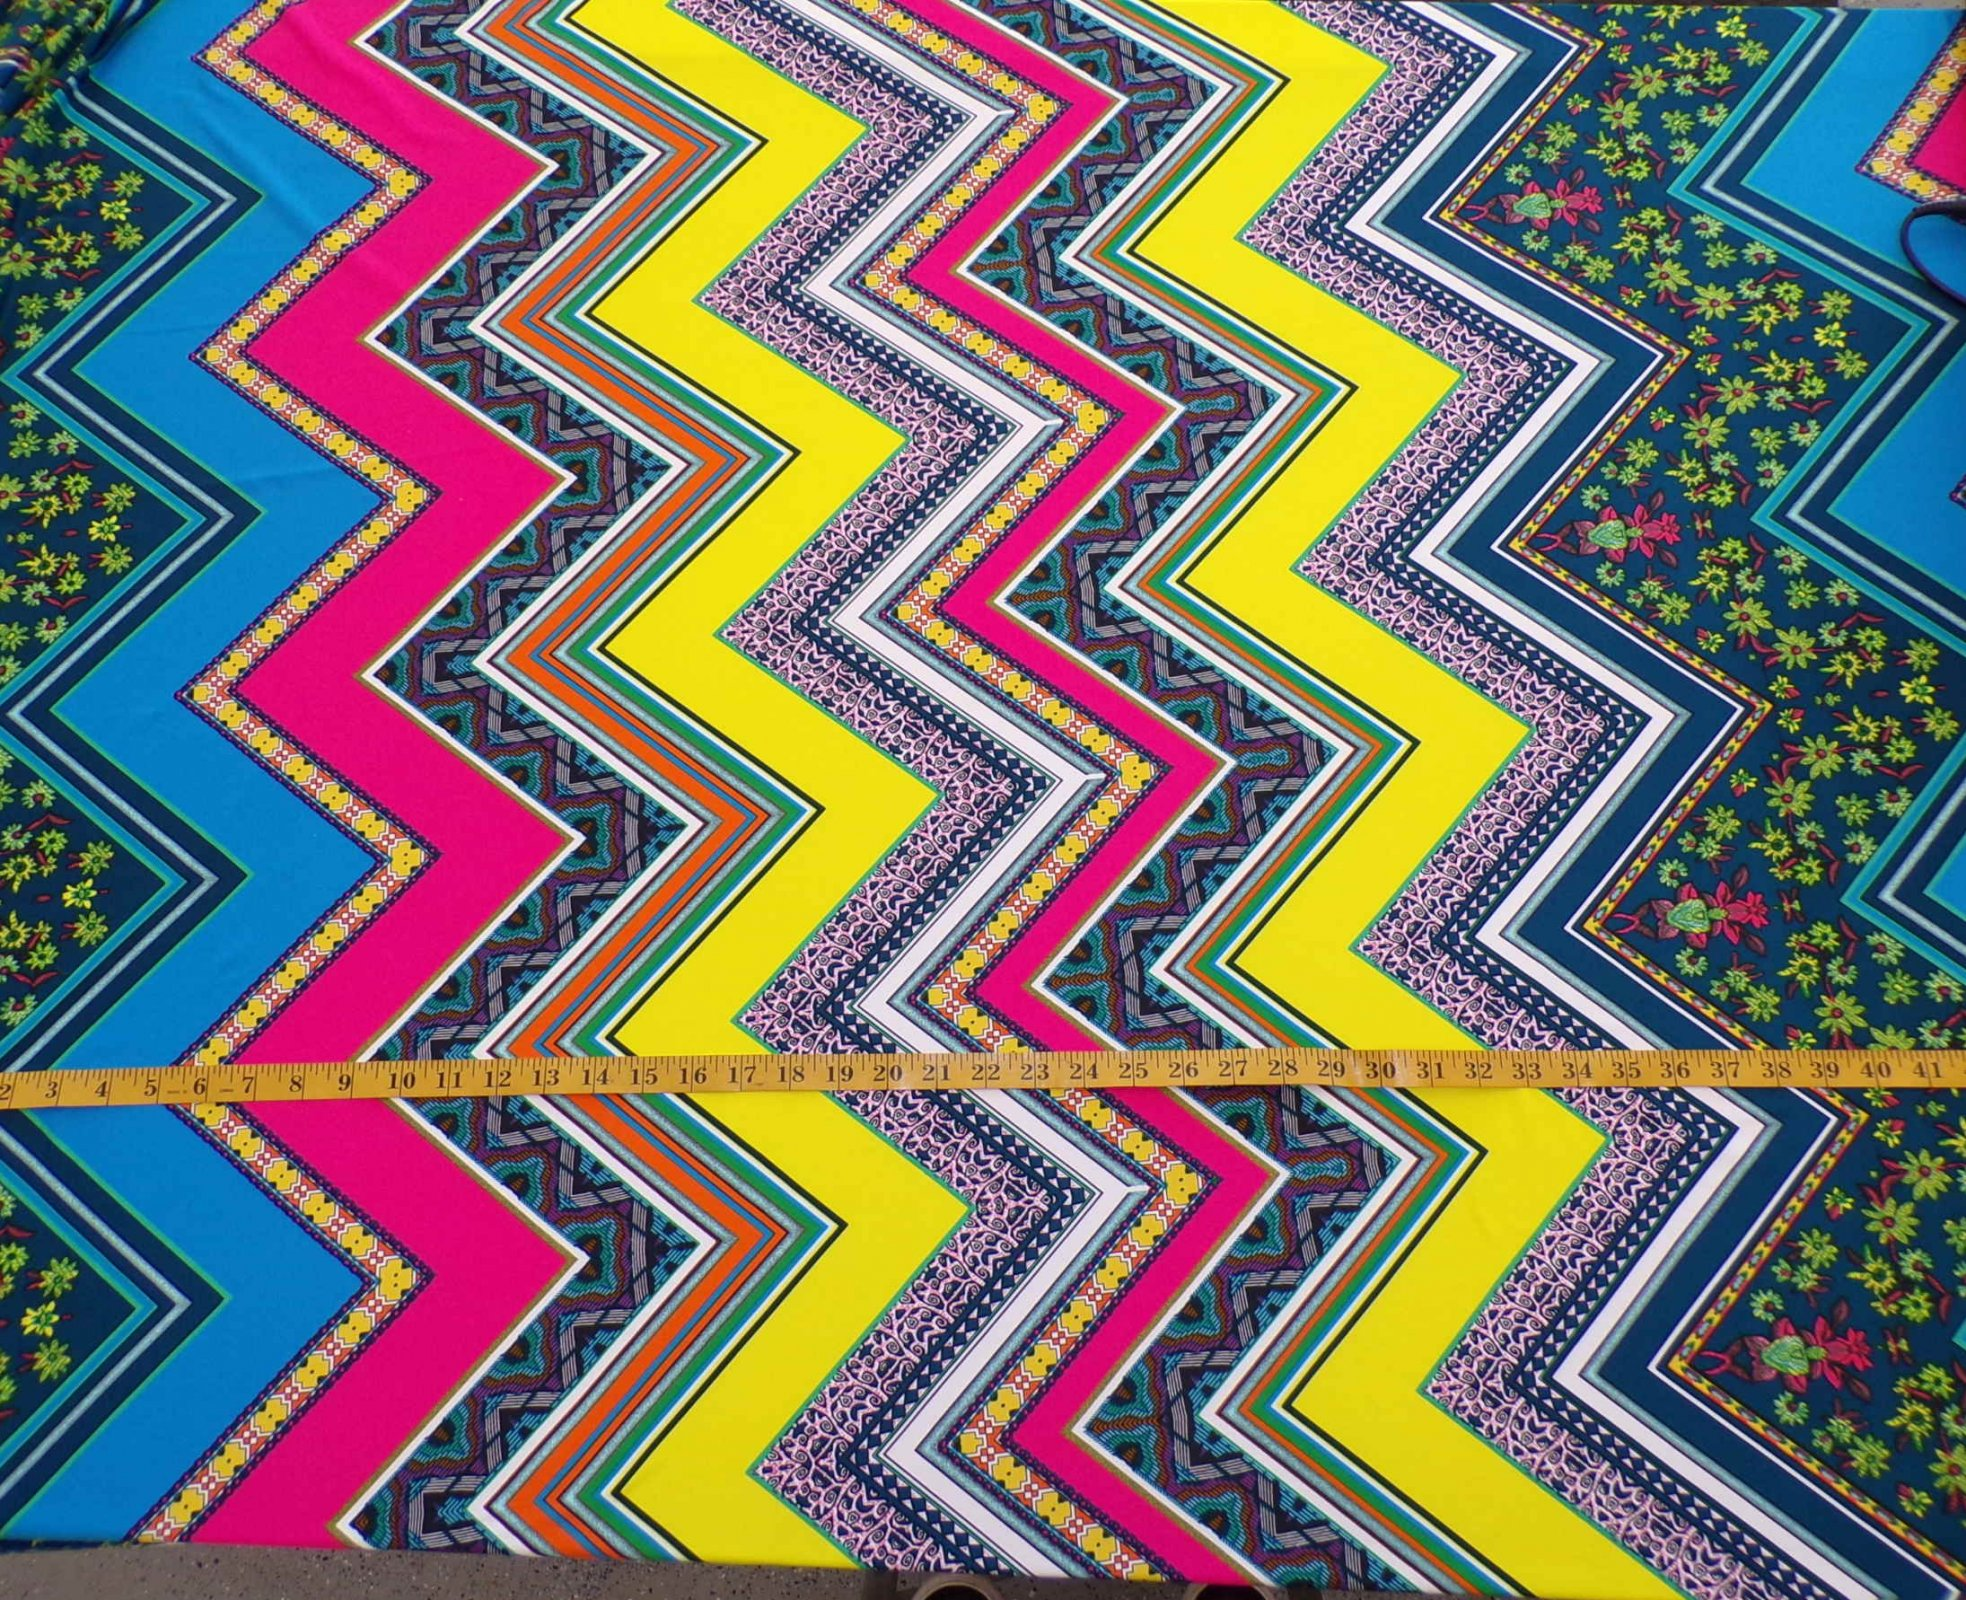 ITY Jersey - Multicolor Chevron - large scale